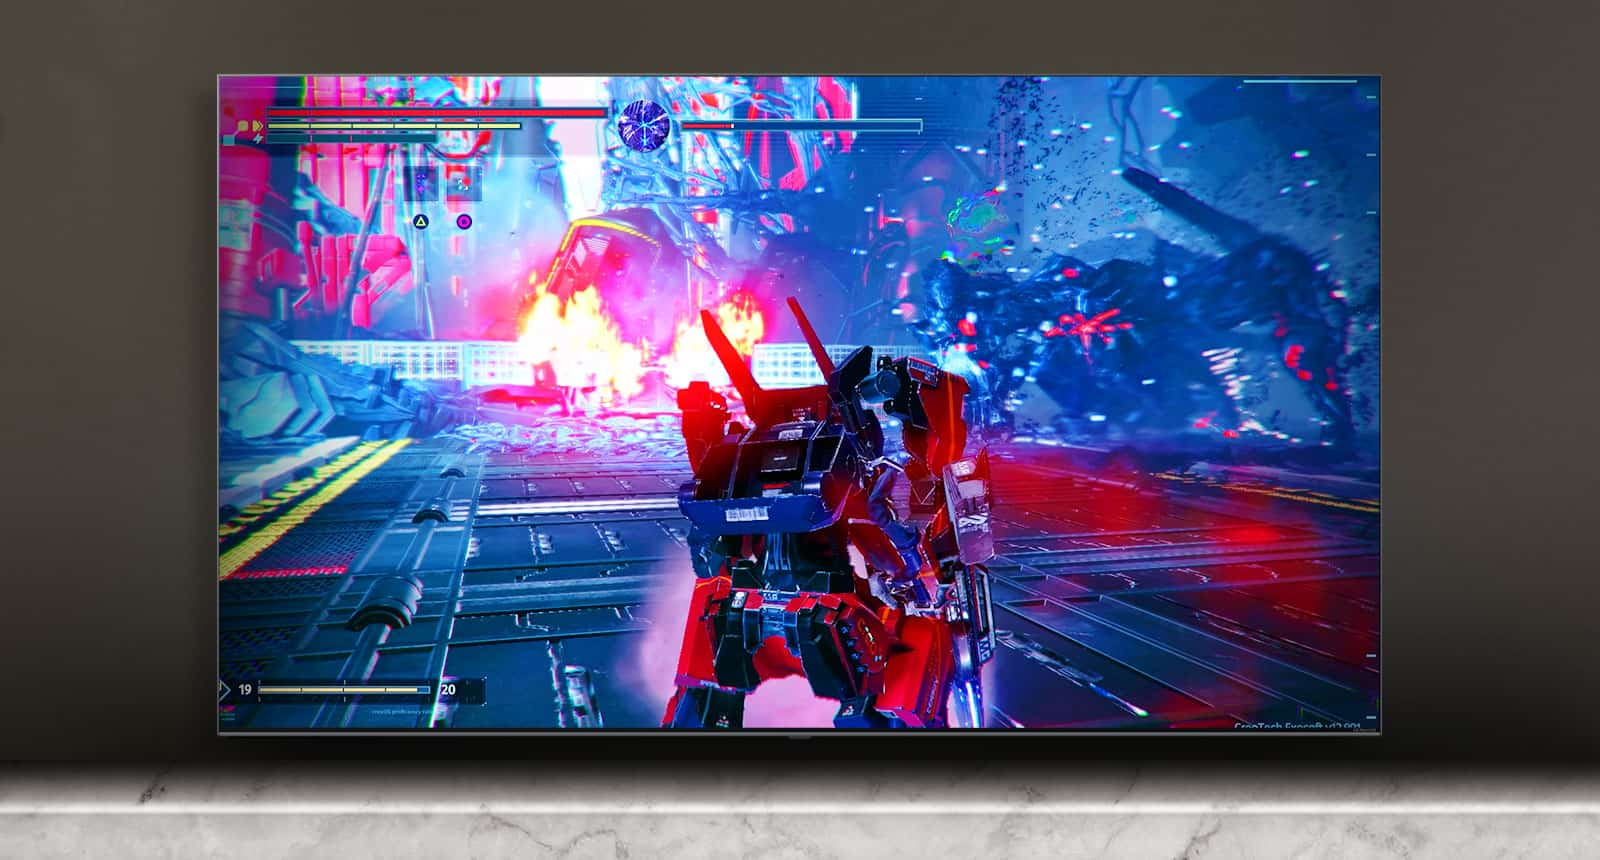 Top 10 Best TVs For The Xbox Series X & PS5